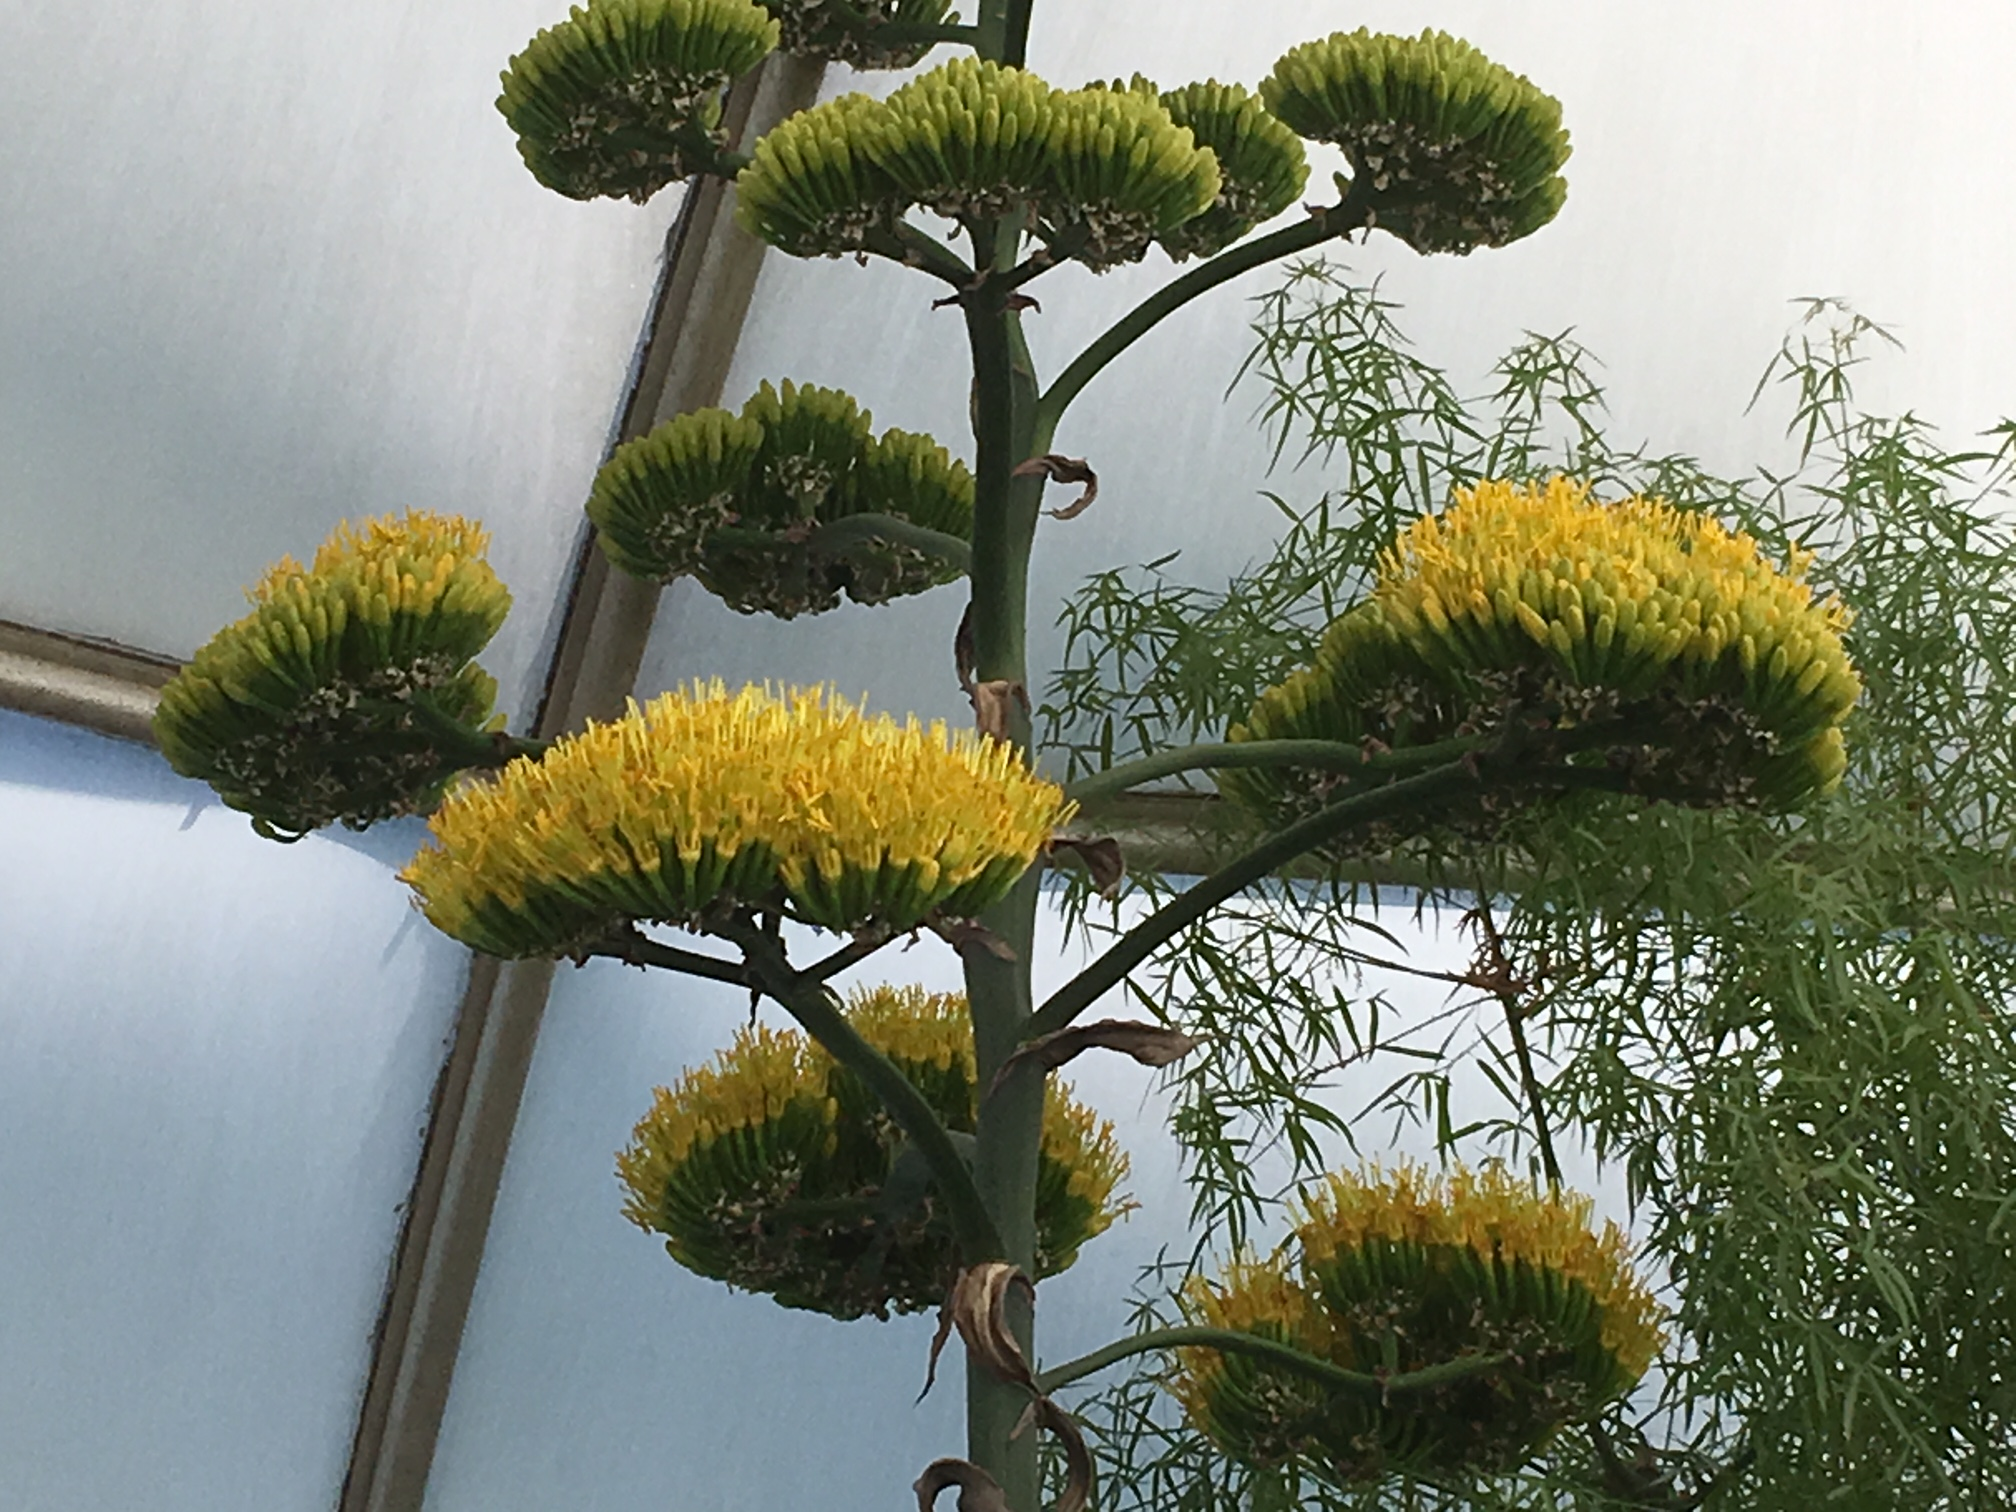 The 50 Year Old Pulque Agave, Agave Salmiana, Growing In The Arid Dome At  Hidden Lake Gardens, Is Blooming For The First   And Only   Time In Its  Life Span!